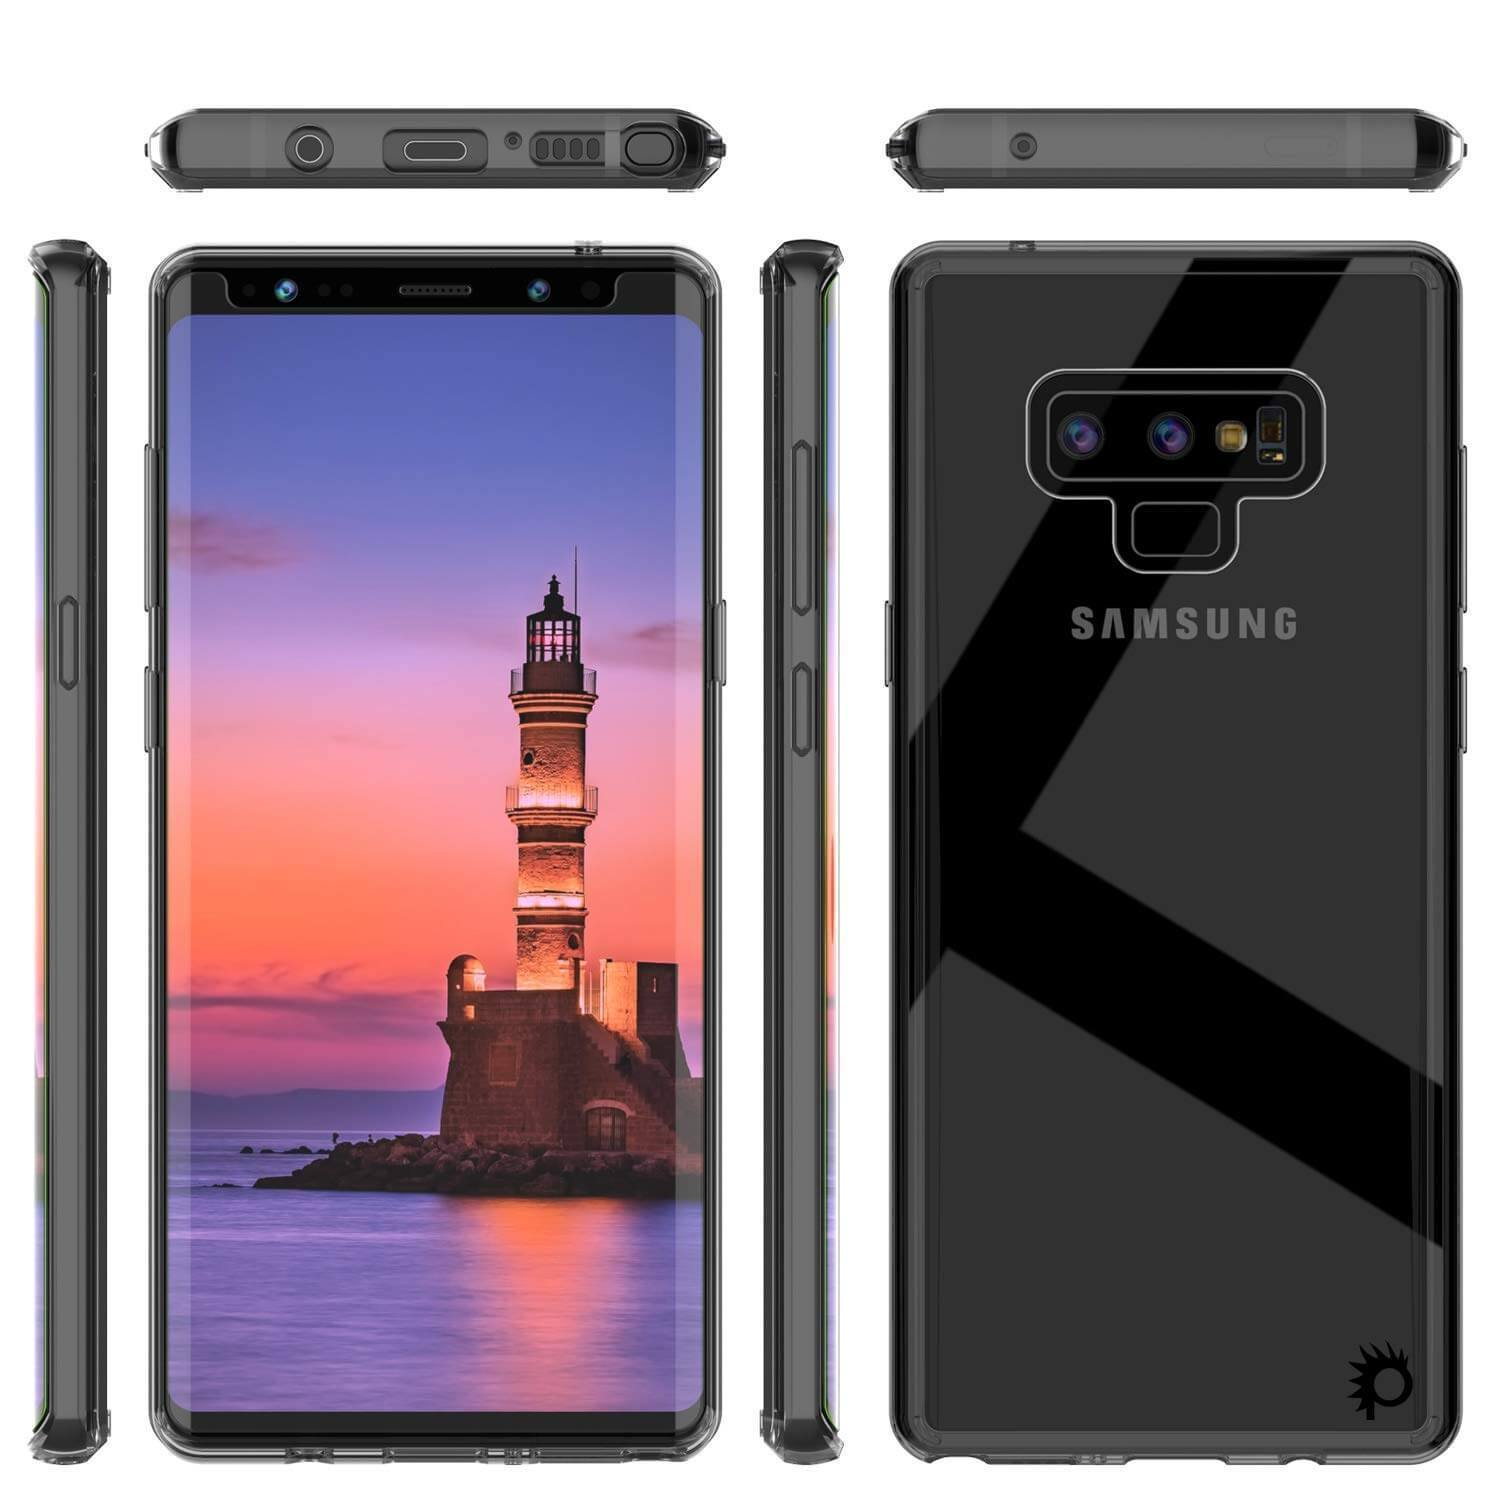 Galaxy Note 9 Case, PUNKcase [LUCID 2.0 Series] [Slim Fit] Armor Cover W/Integrated Anti-Shock System [Crystal Black]